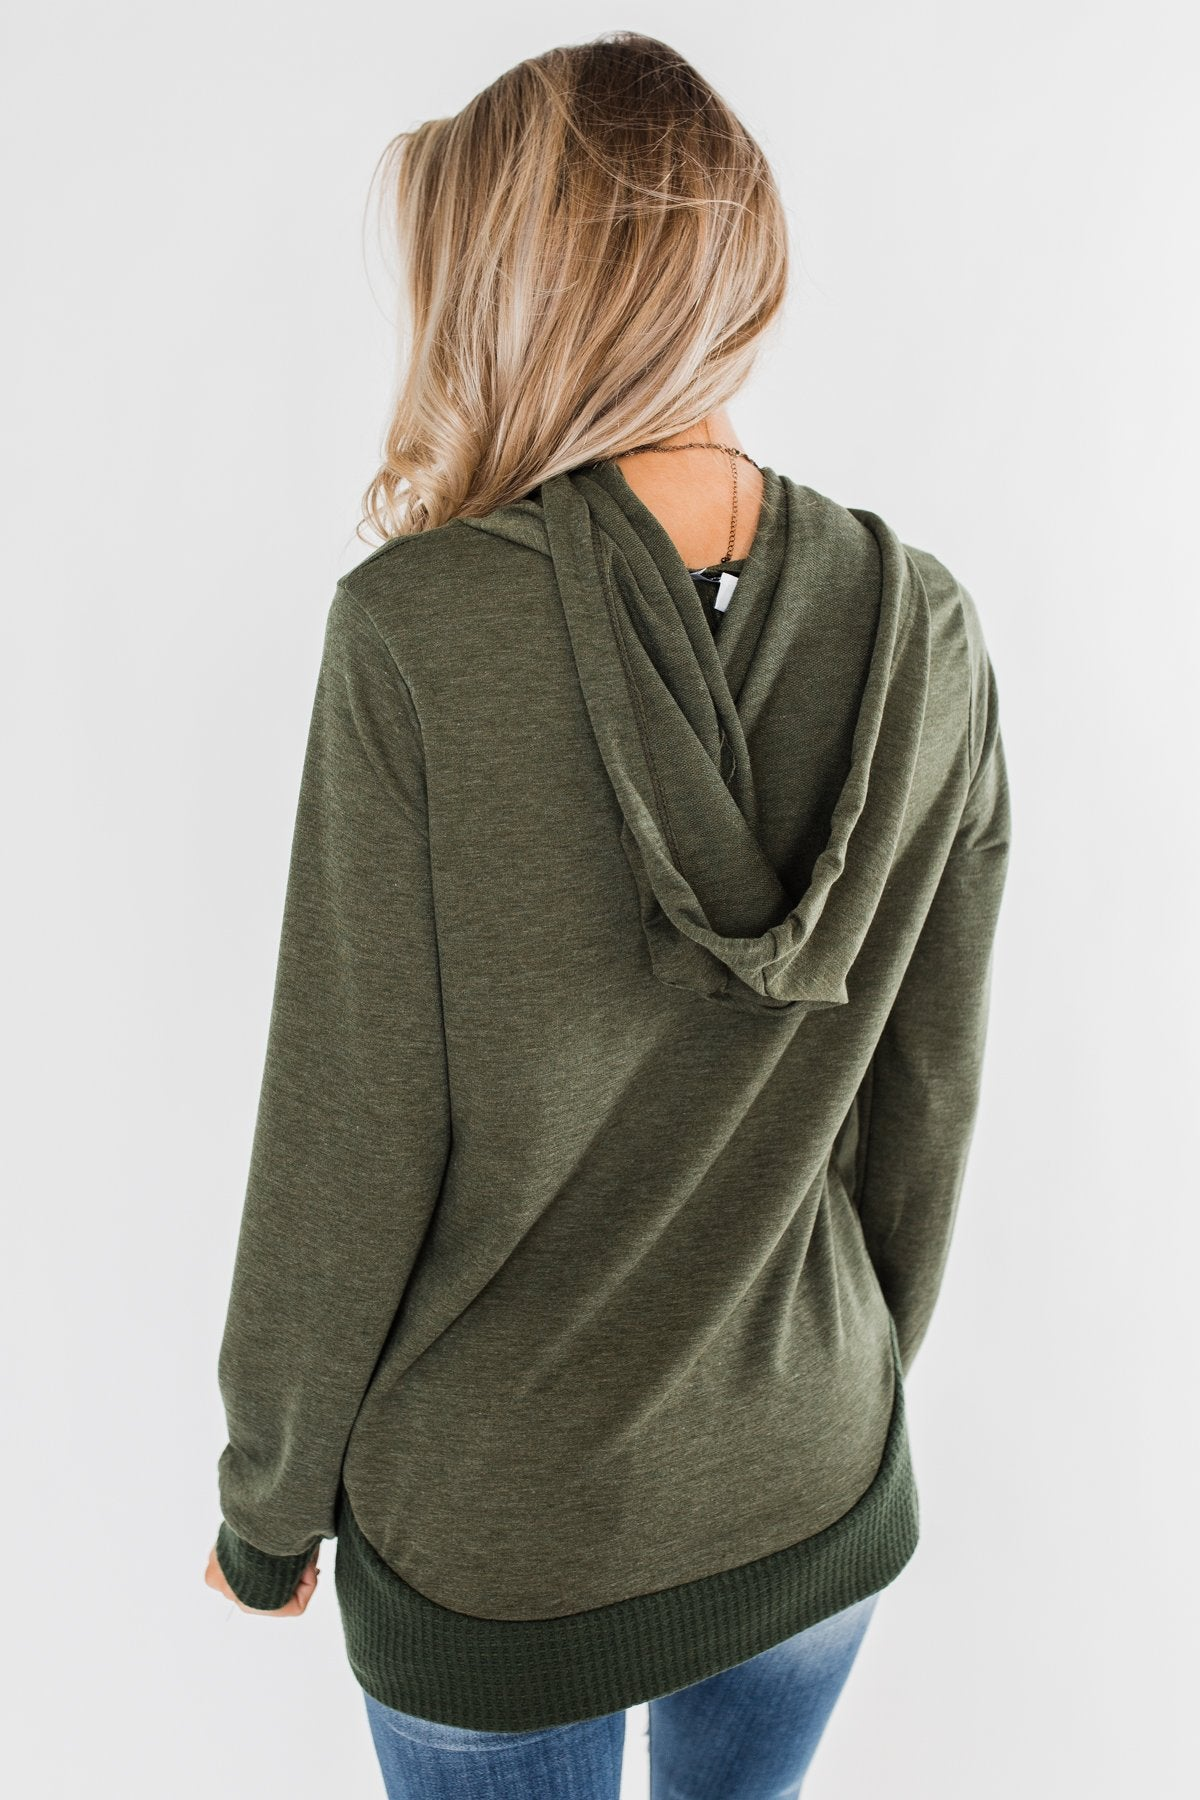 Crazy About You Drawstring Hoodie- Dark Olive